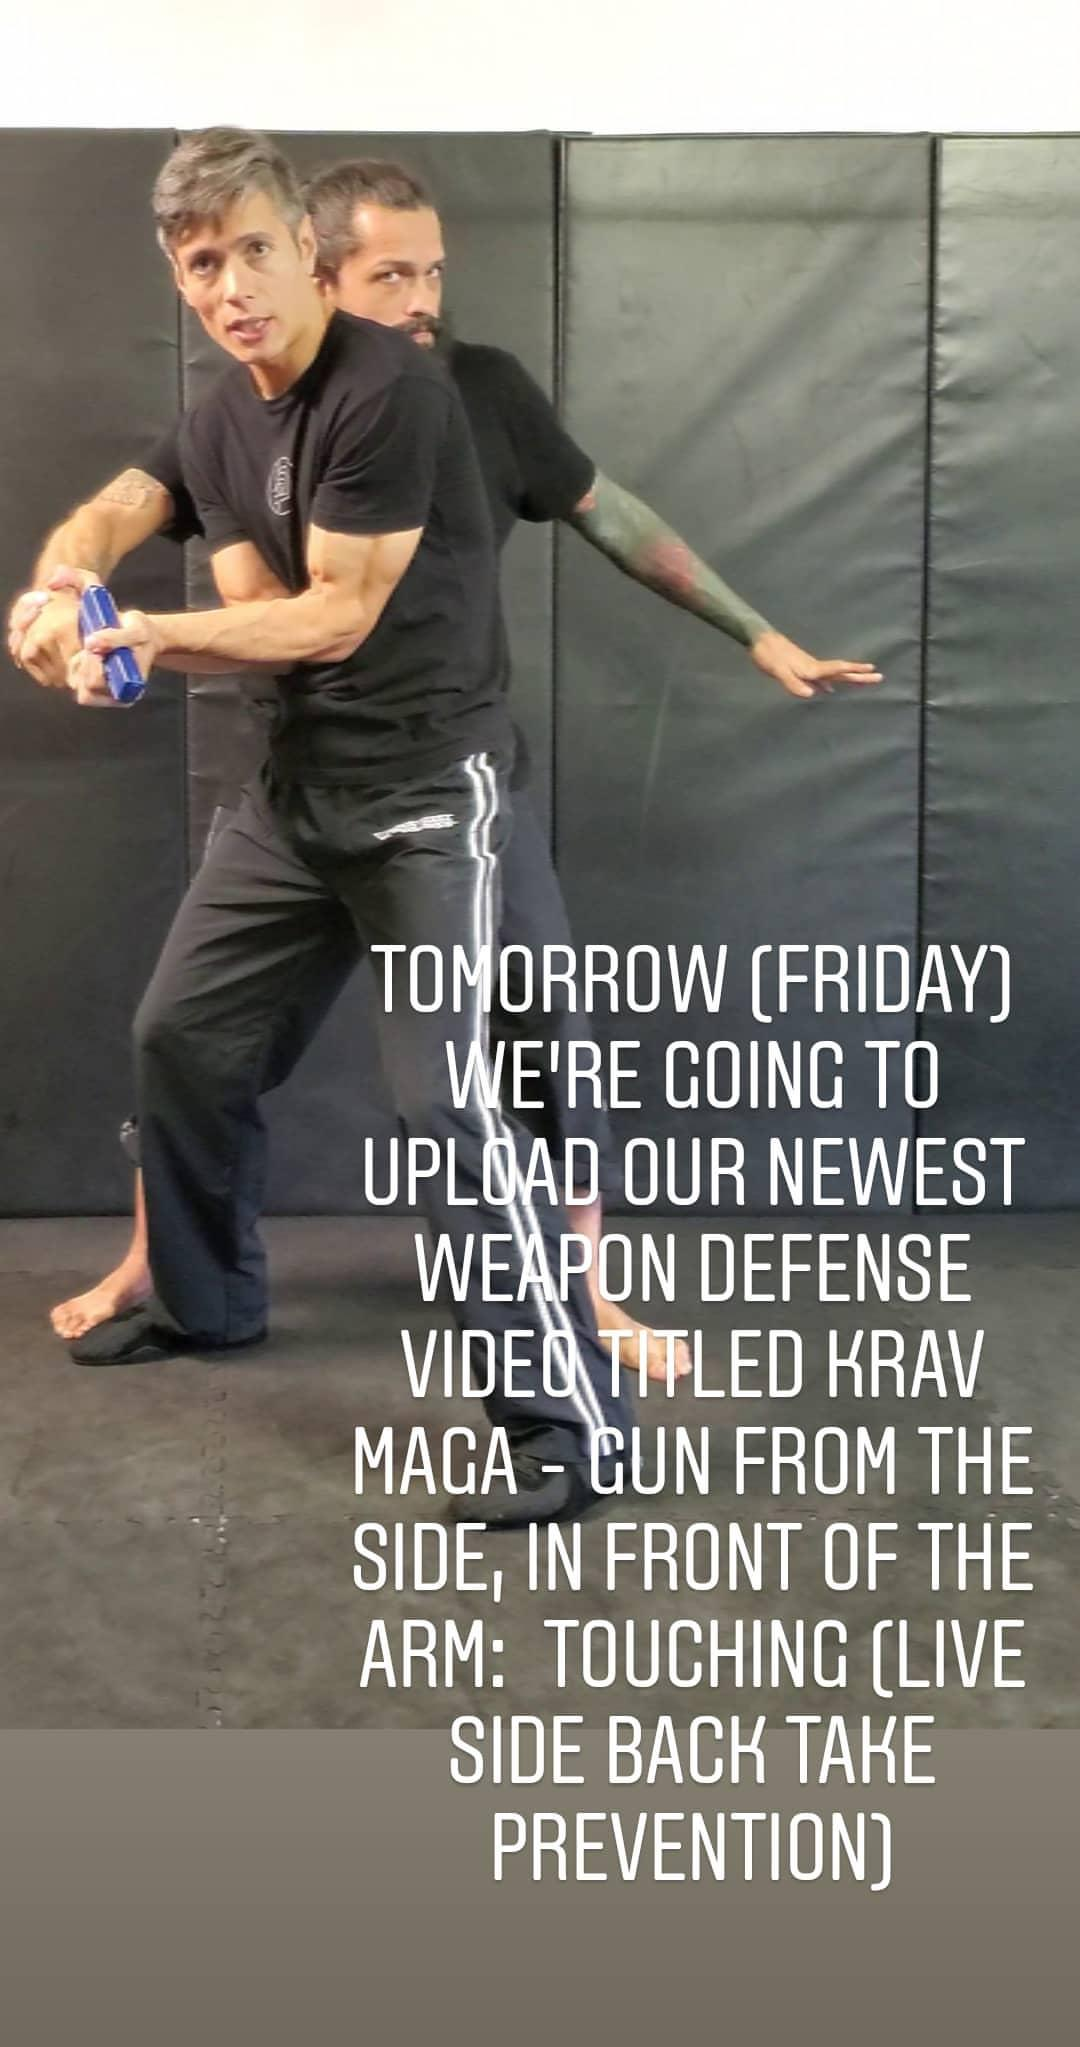 Krav Maga - Gun From The Side, In Front Of The Arm: Touching (Live Side Back Take Prevention